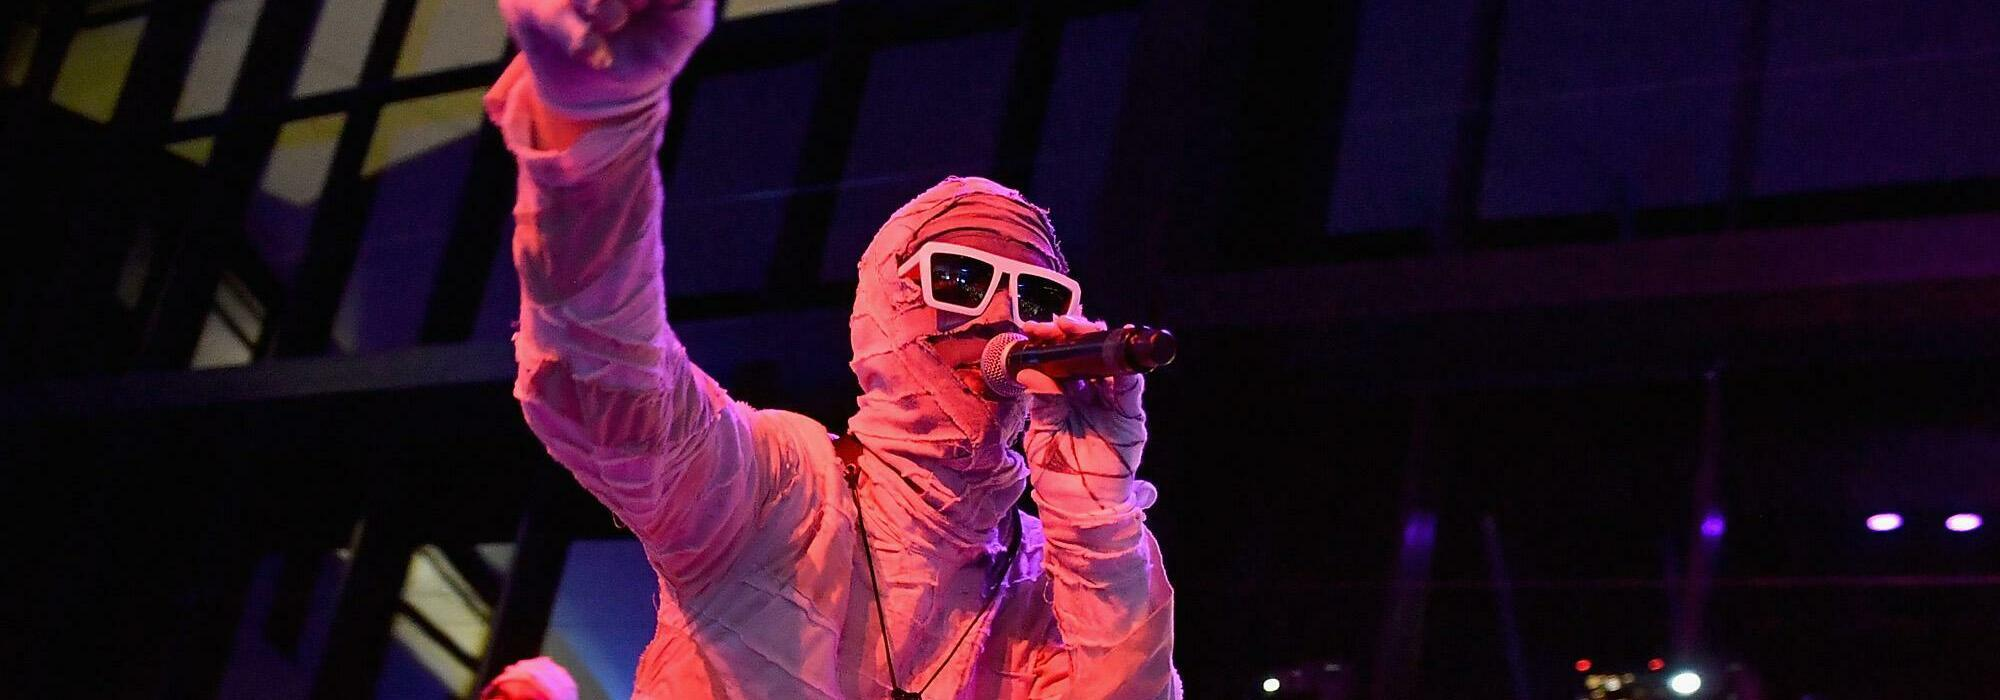 A Here Come The Mummies live event